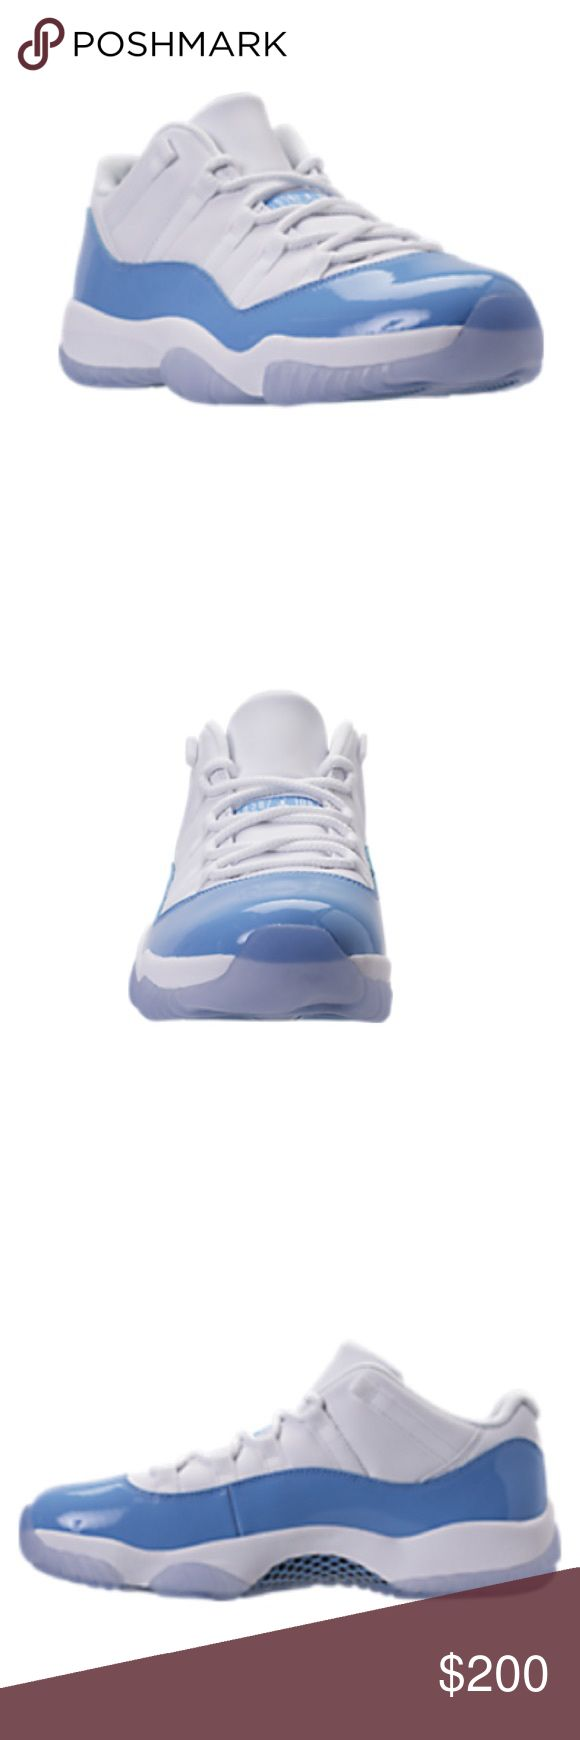 Men's Air Jordan Retro 11 Low Basketball Shoes comes with box, bought from footlocker, only worn once, willing to negotiate, & best offer! Jordan Shoes Athletic Shoes